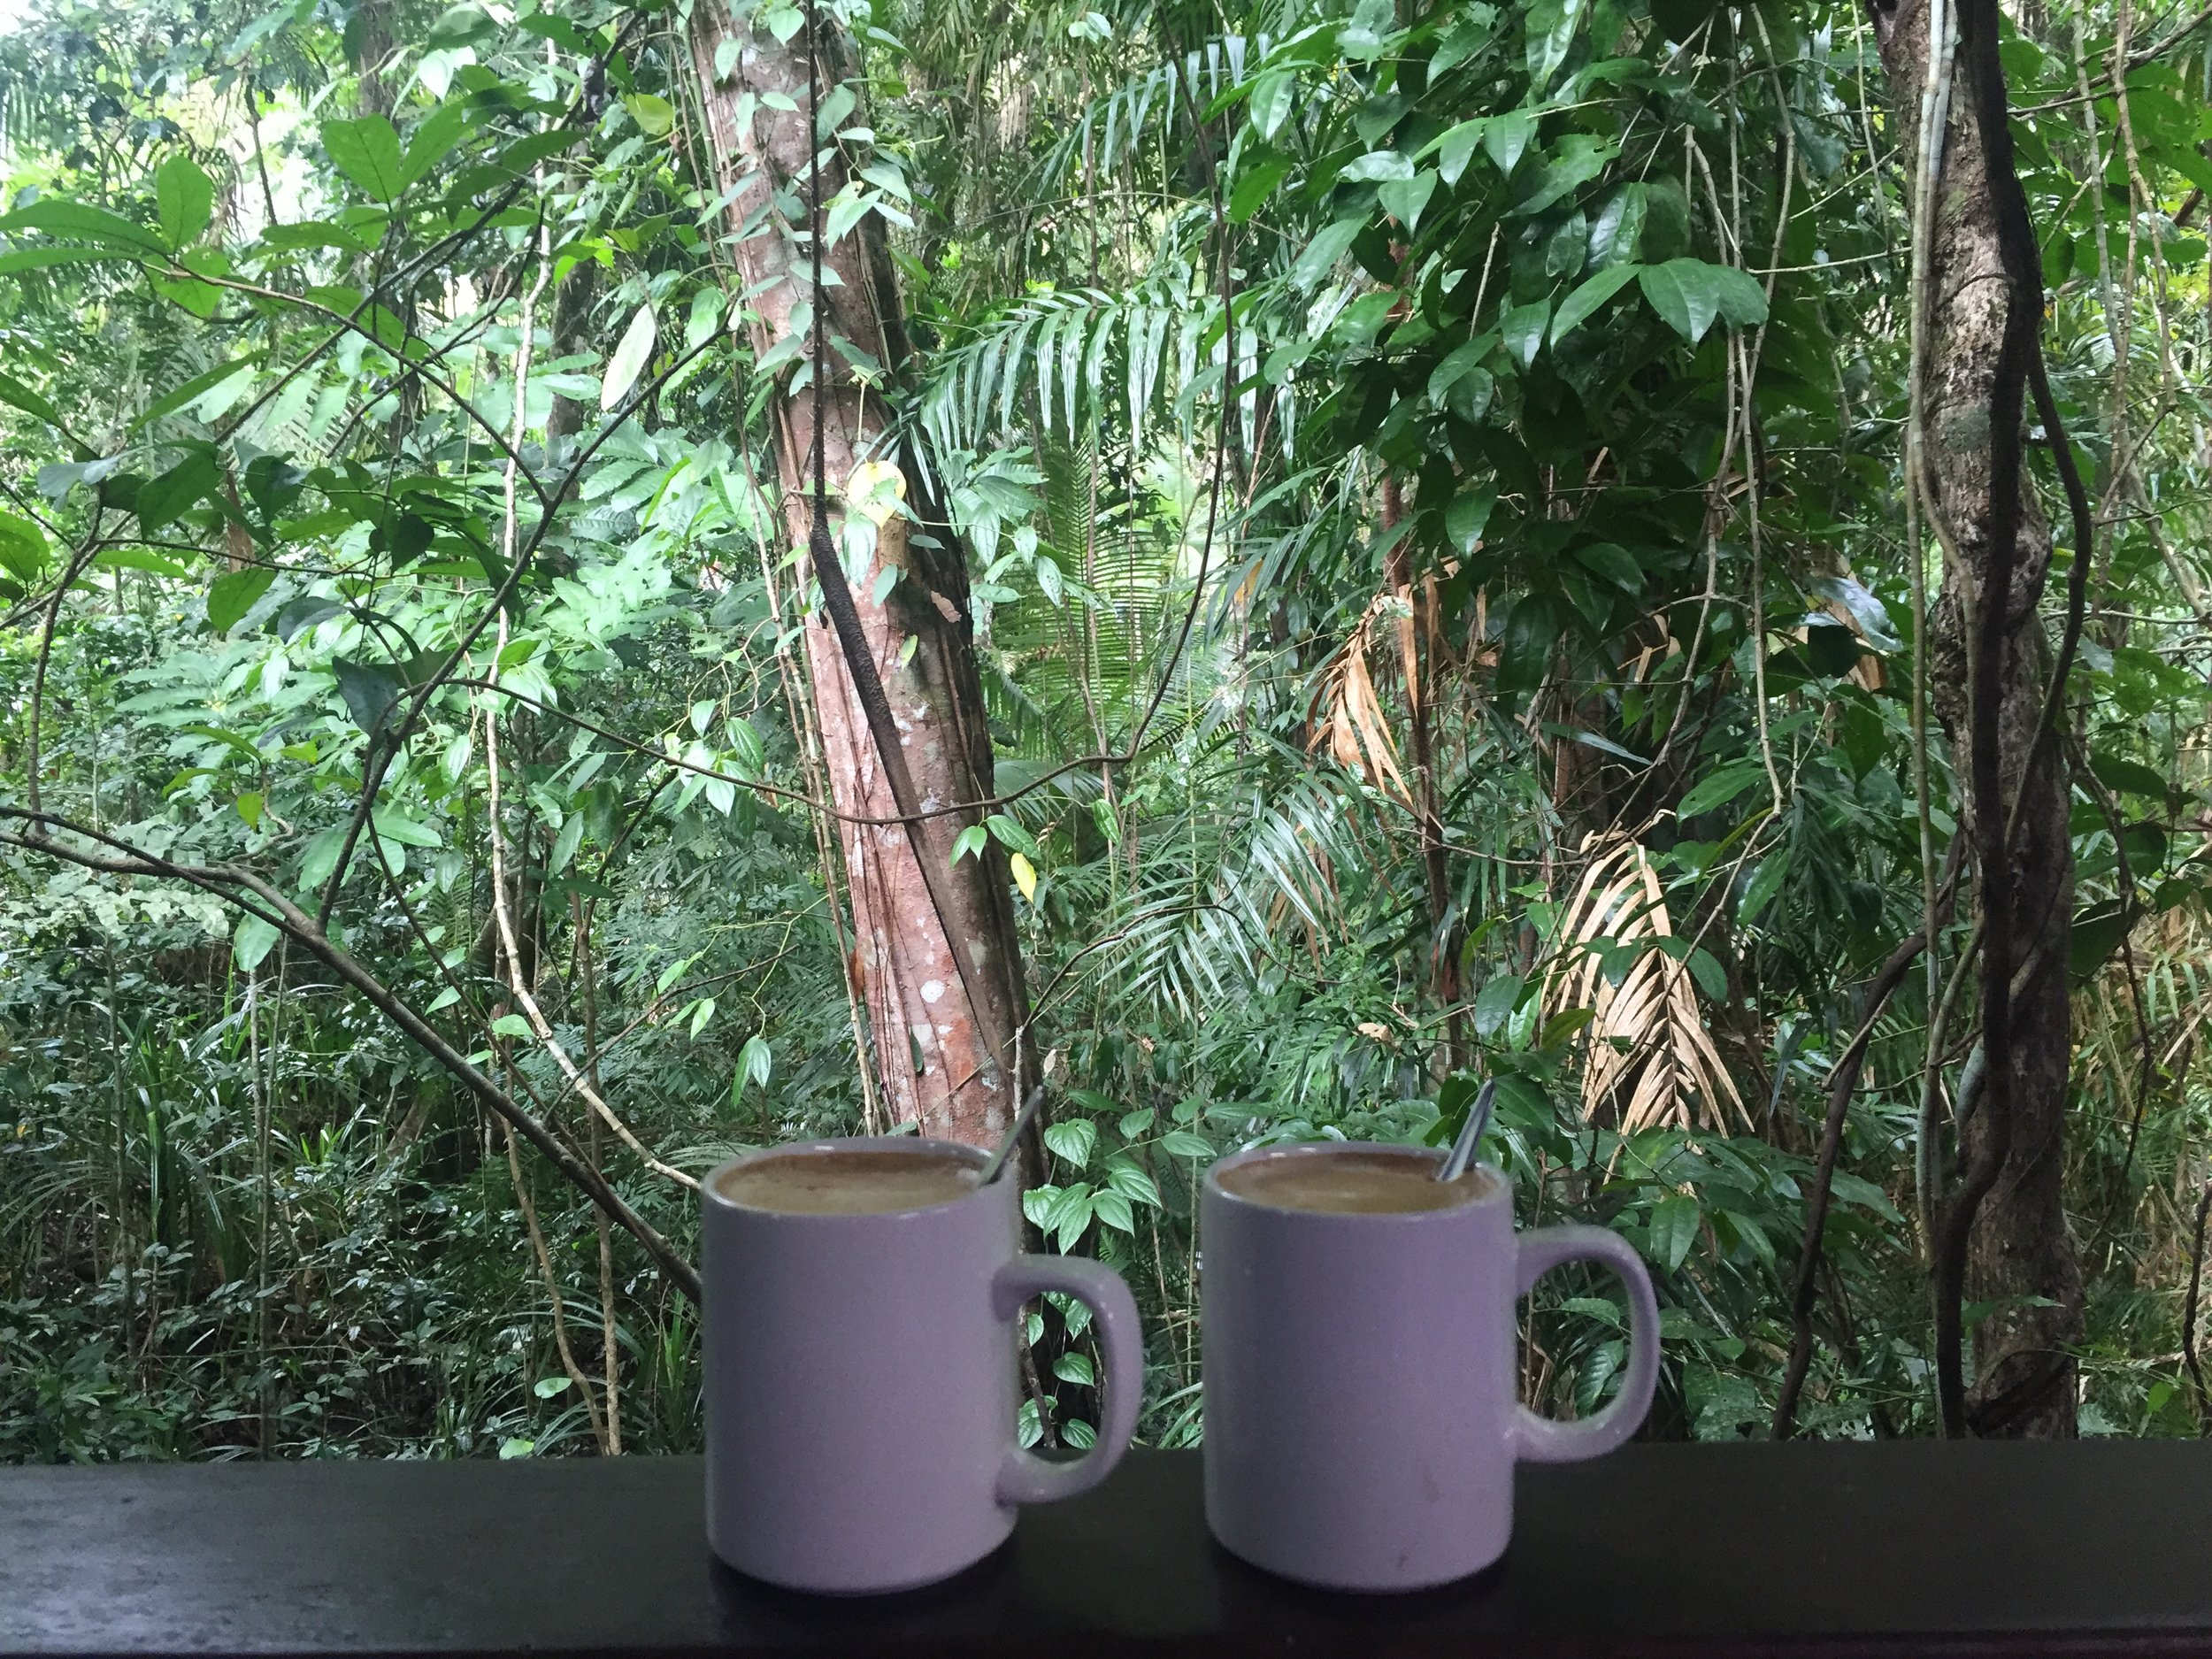 Things to do in Cairns: Coffee with a view in the Daintree